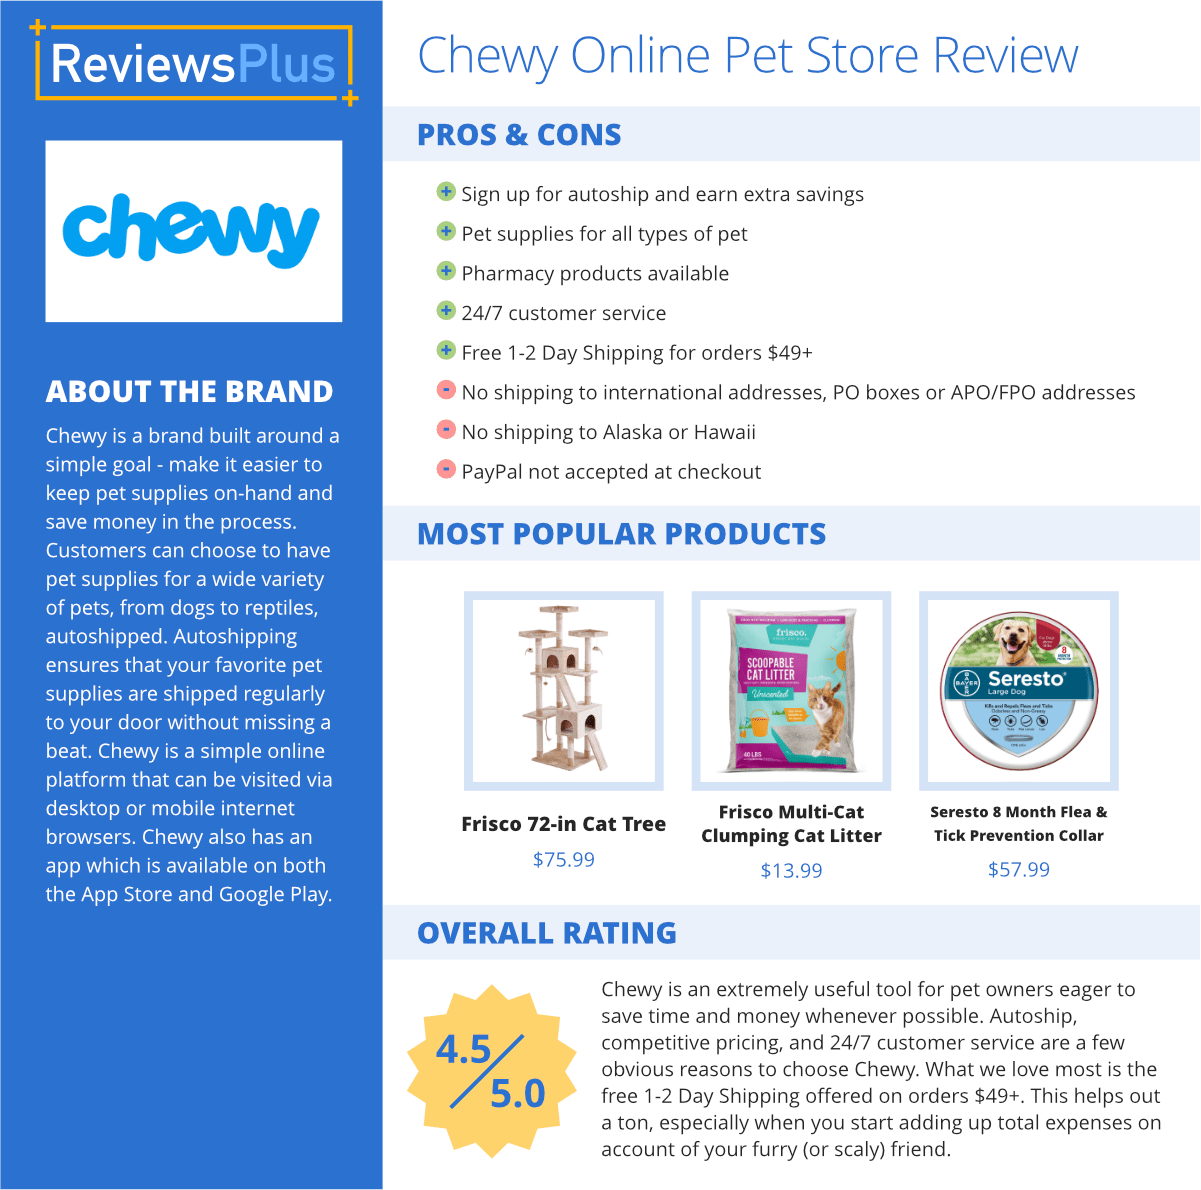 Chewy Online Pet Store Review - ReviewsPlus